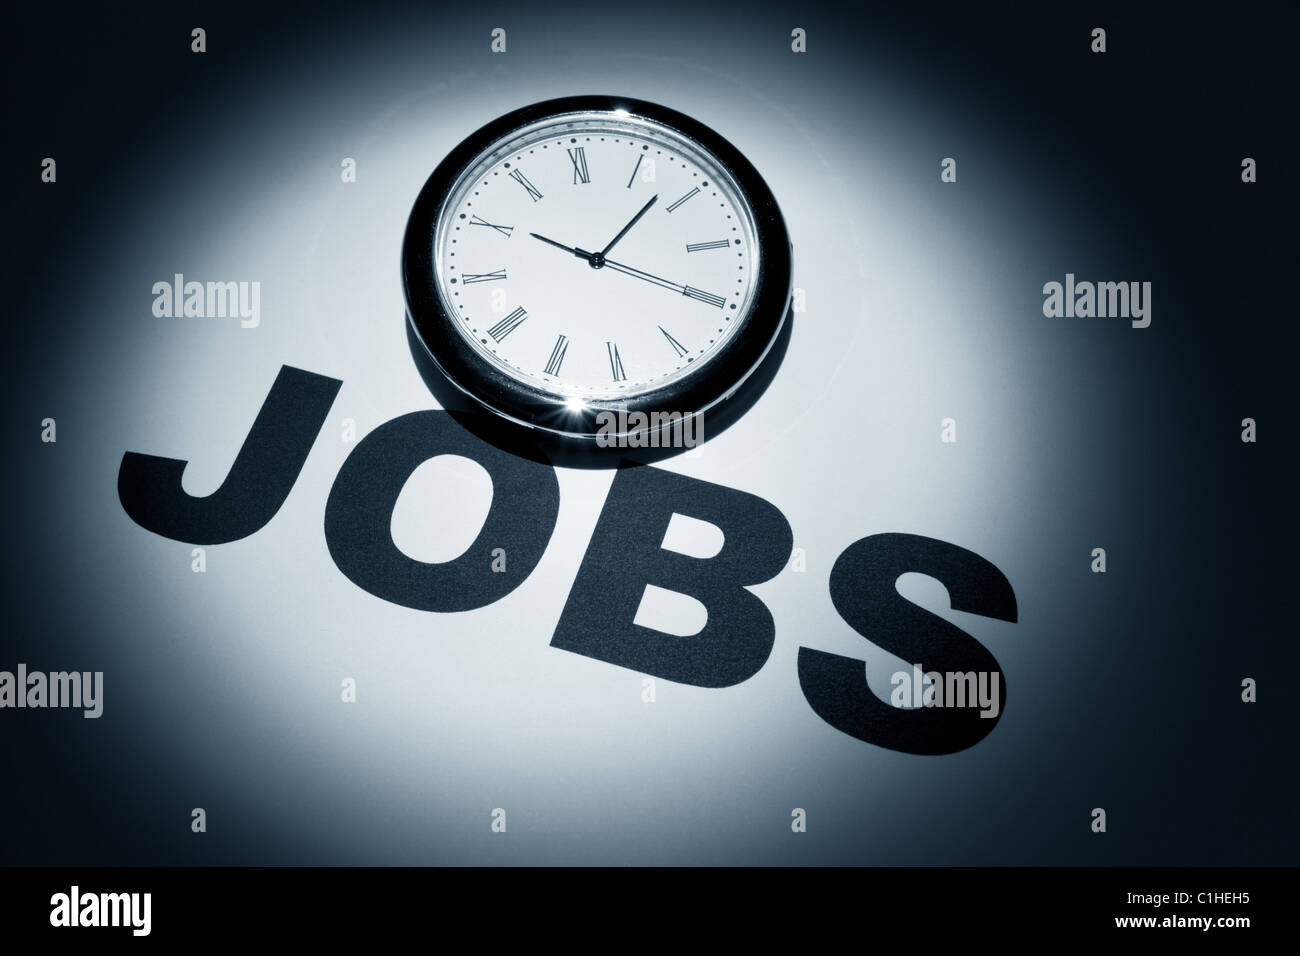 Clock and word of Jobs for background - Stock Image